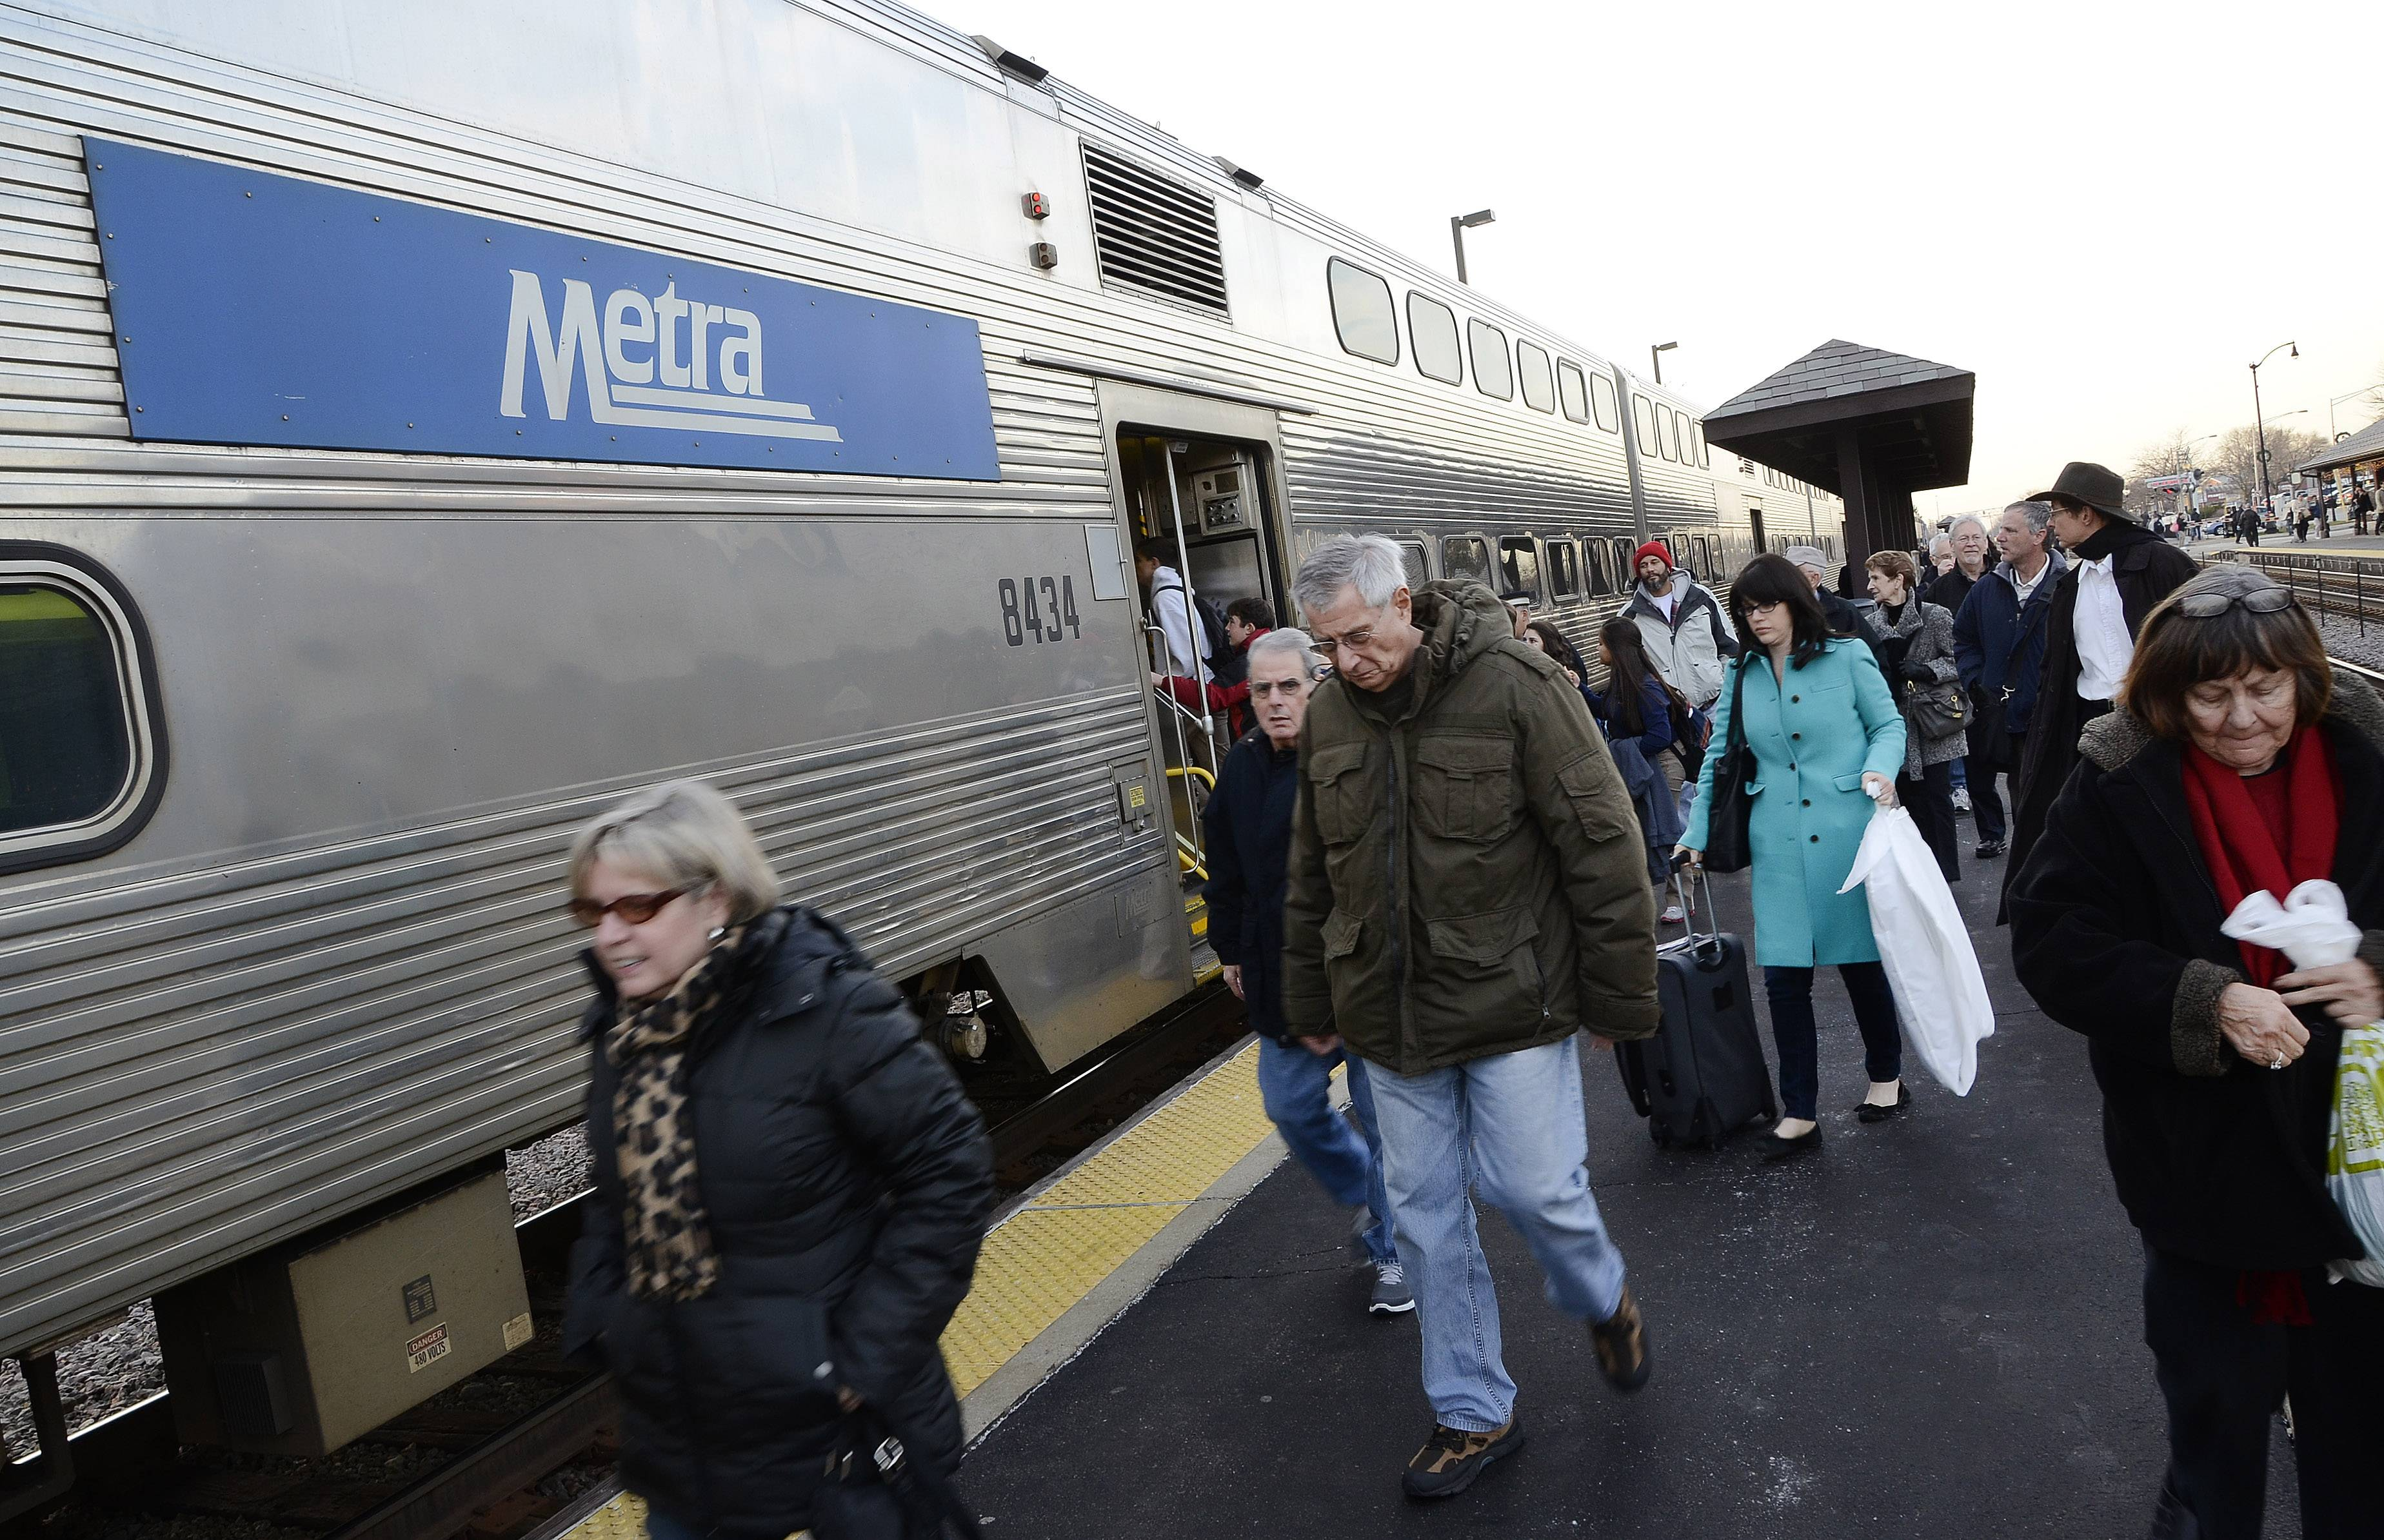 Metra aims to replace railcars despite iffy funding